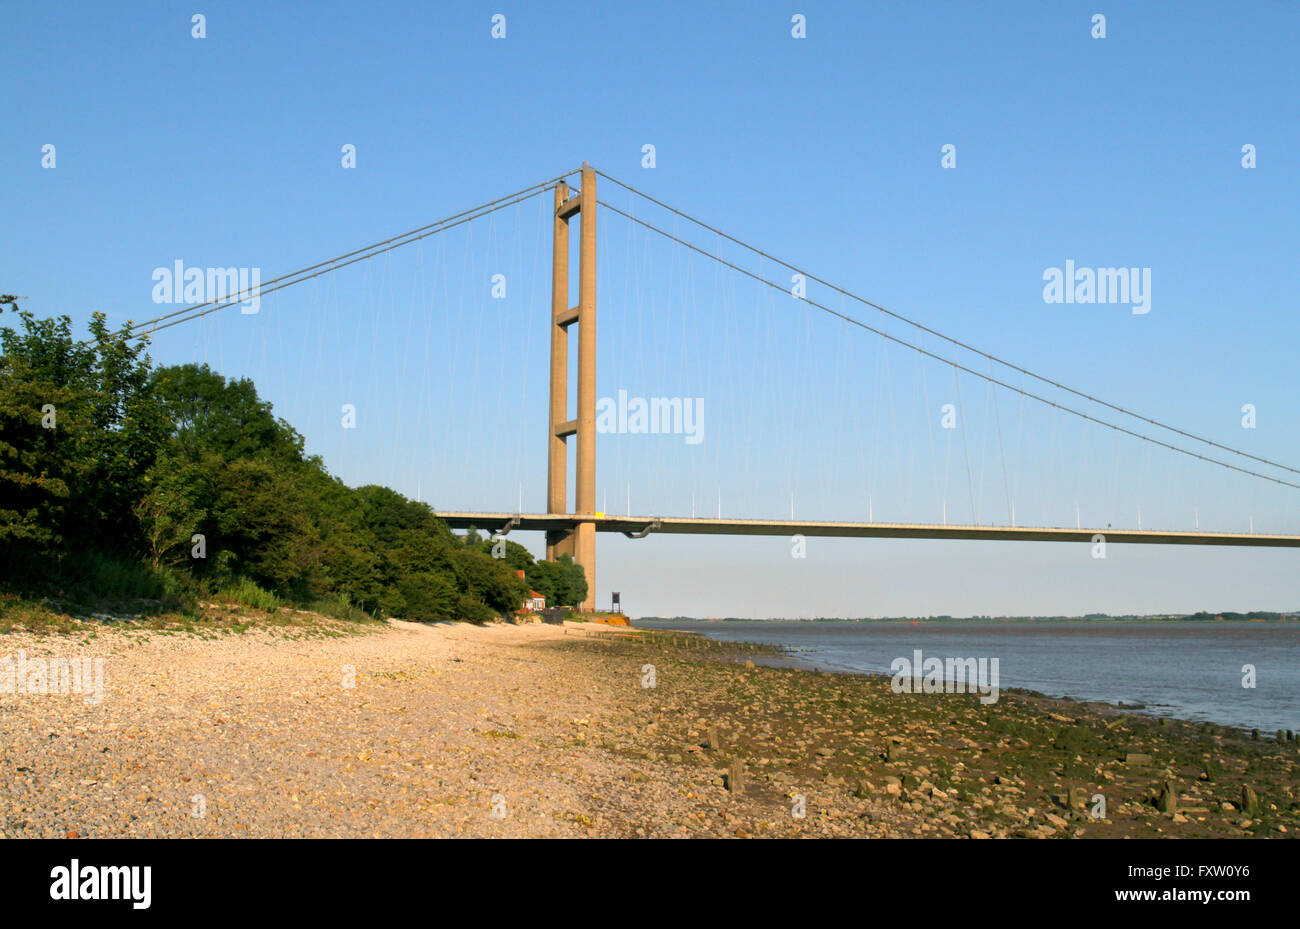 HUMBER BRIDGE HESSLE HULL ENGLAND 30 June 2014 - Stock Image